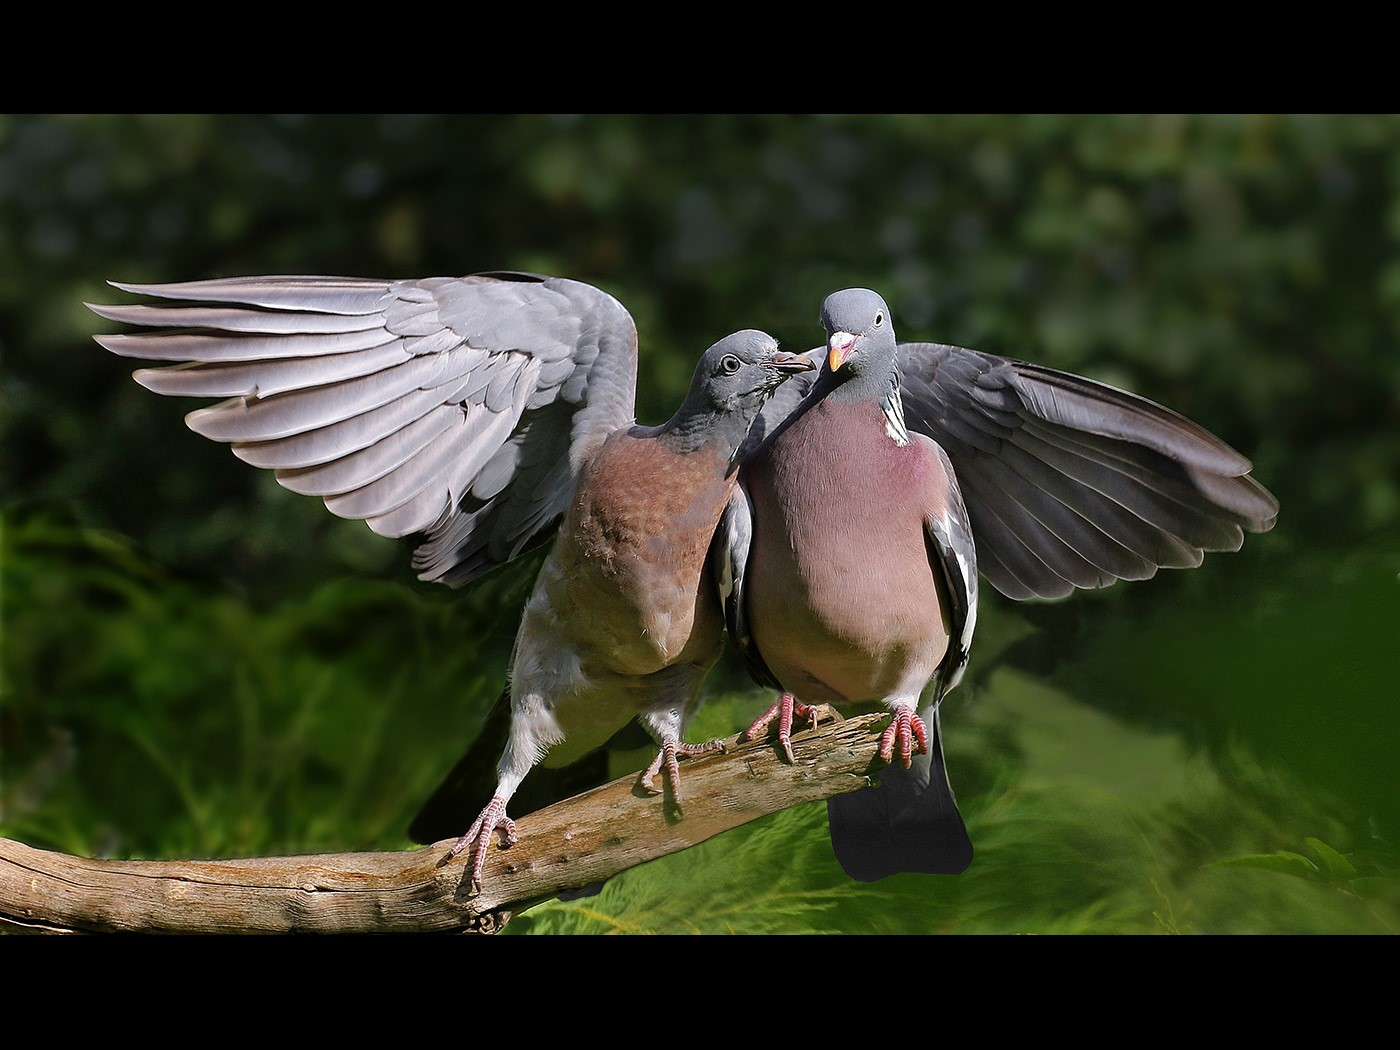 Wood Pigeons in a Courting Mood